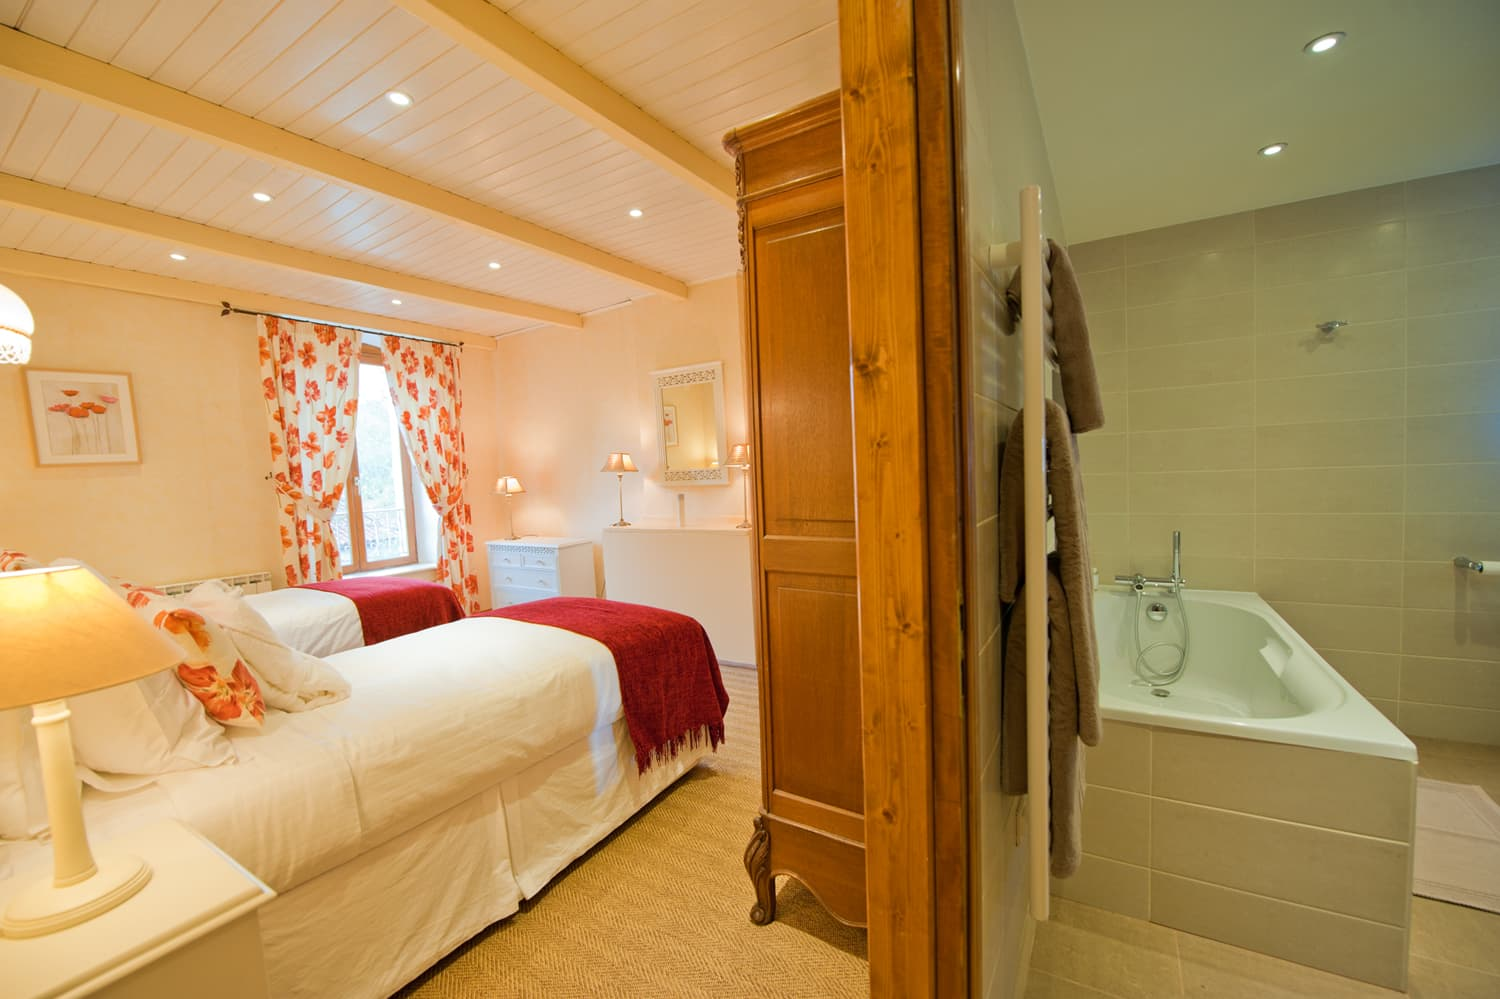 Bedroom with ensuite bathroom in Languedoc holiday home